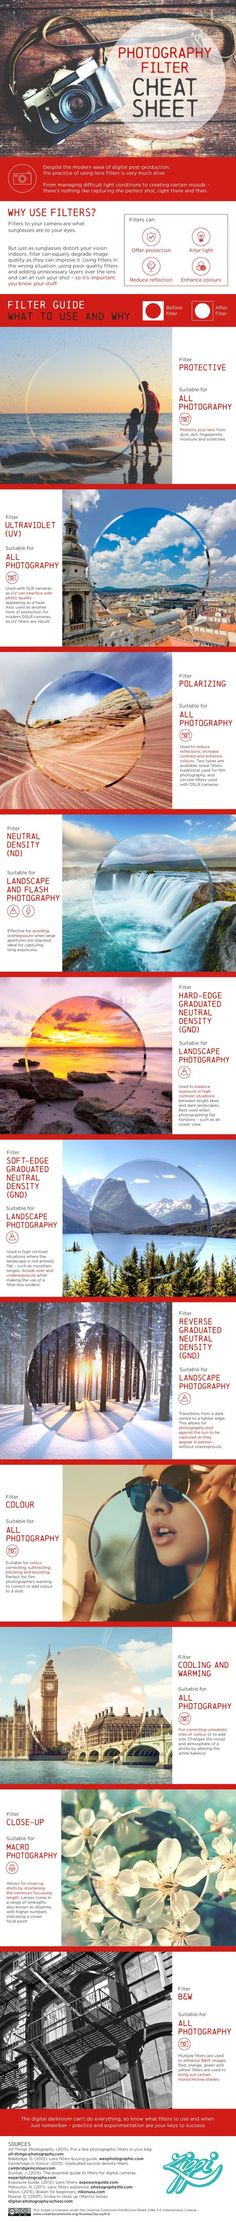 Landscape Photography Tips: Photography Filters - A Cheat Sheet Photography Cheat Sheets, Photography Filters, Photography Basics, Photography Lessons, Photoshop Photography, Photography Business, Photography Tutorials, Digital Photography, Travel Photography